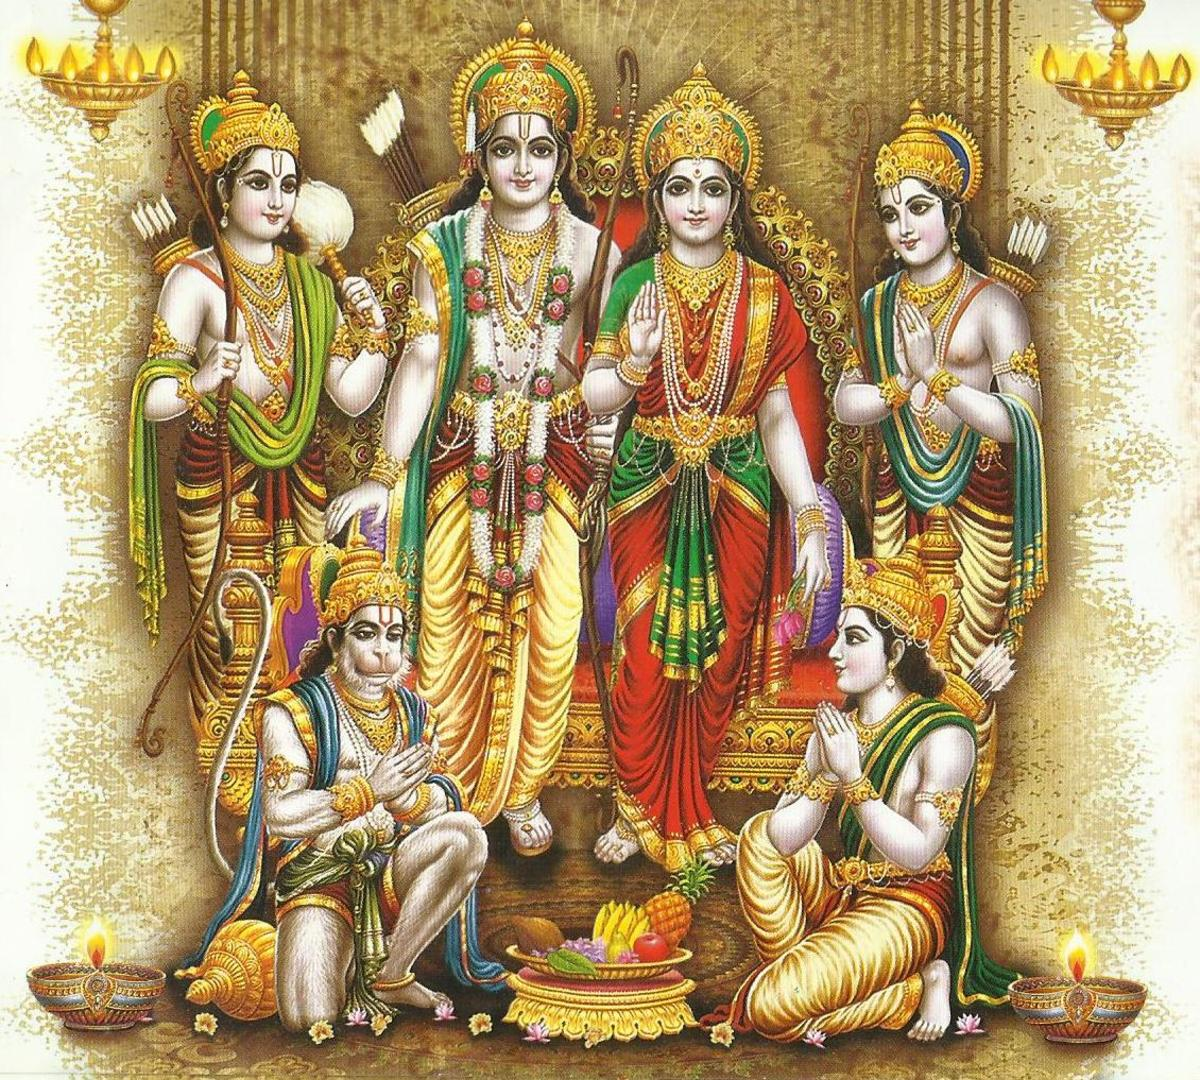 Lord Rama with Brothers, Sita and Hanuman.